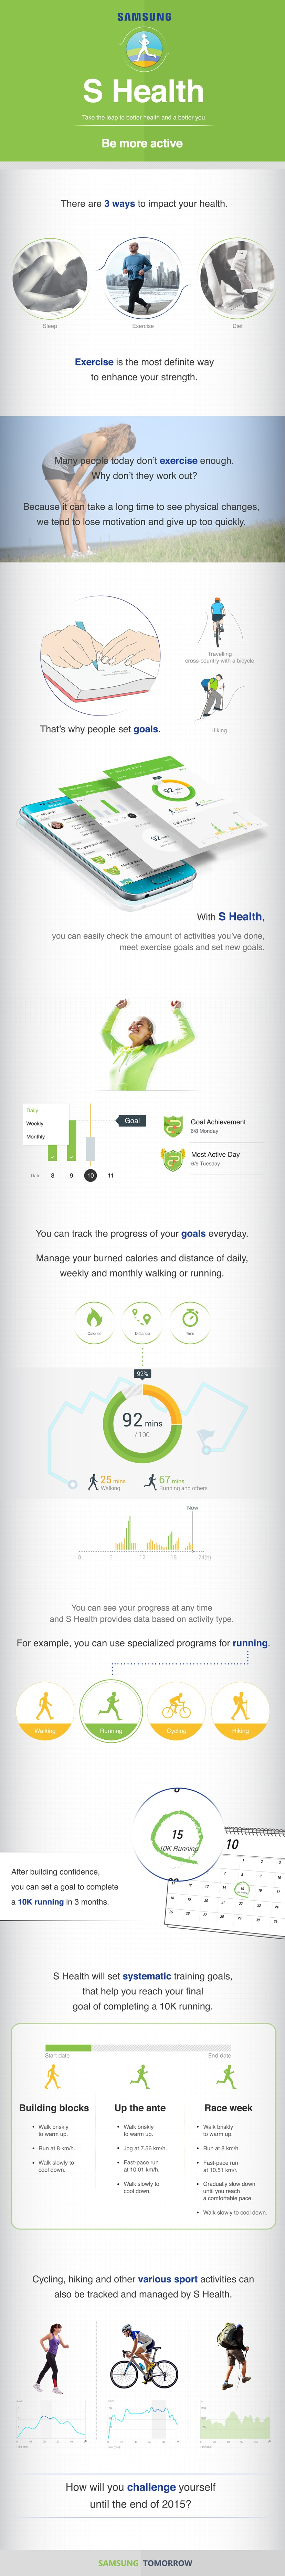 [Infographic] How To Get Fit with the S Health App